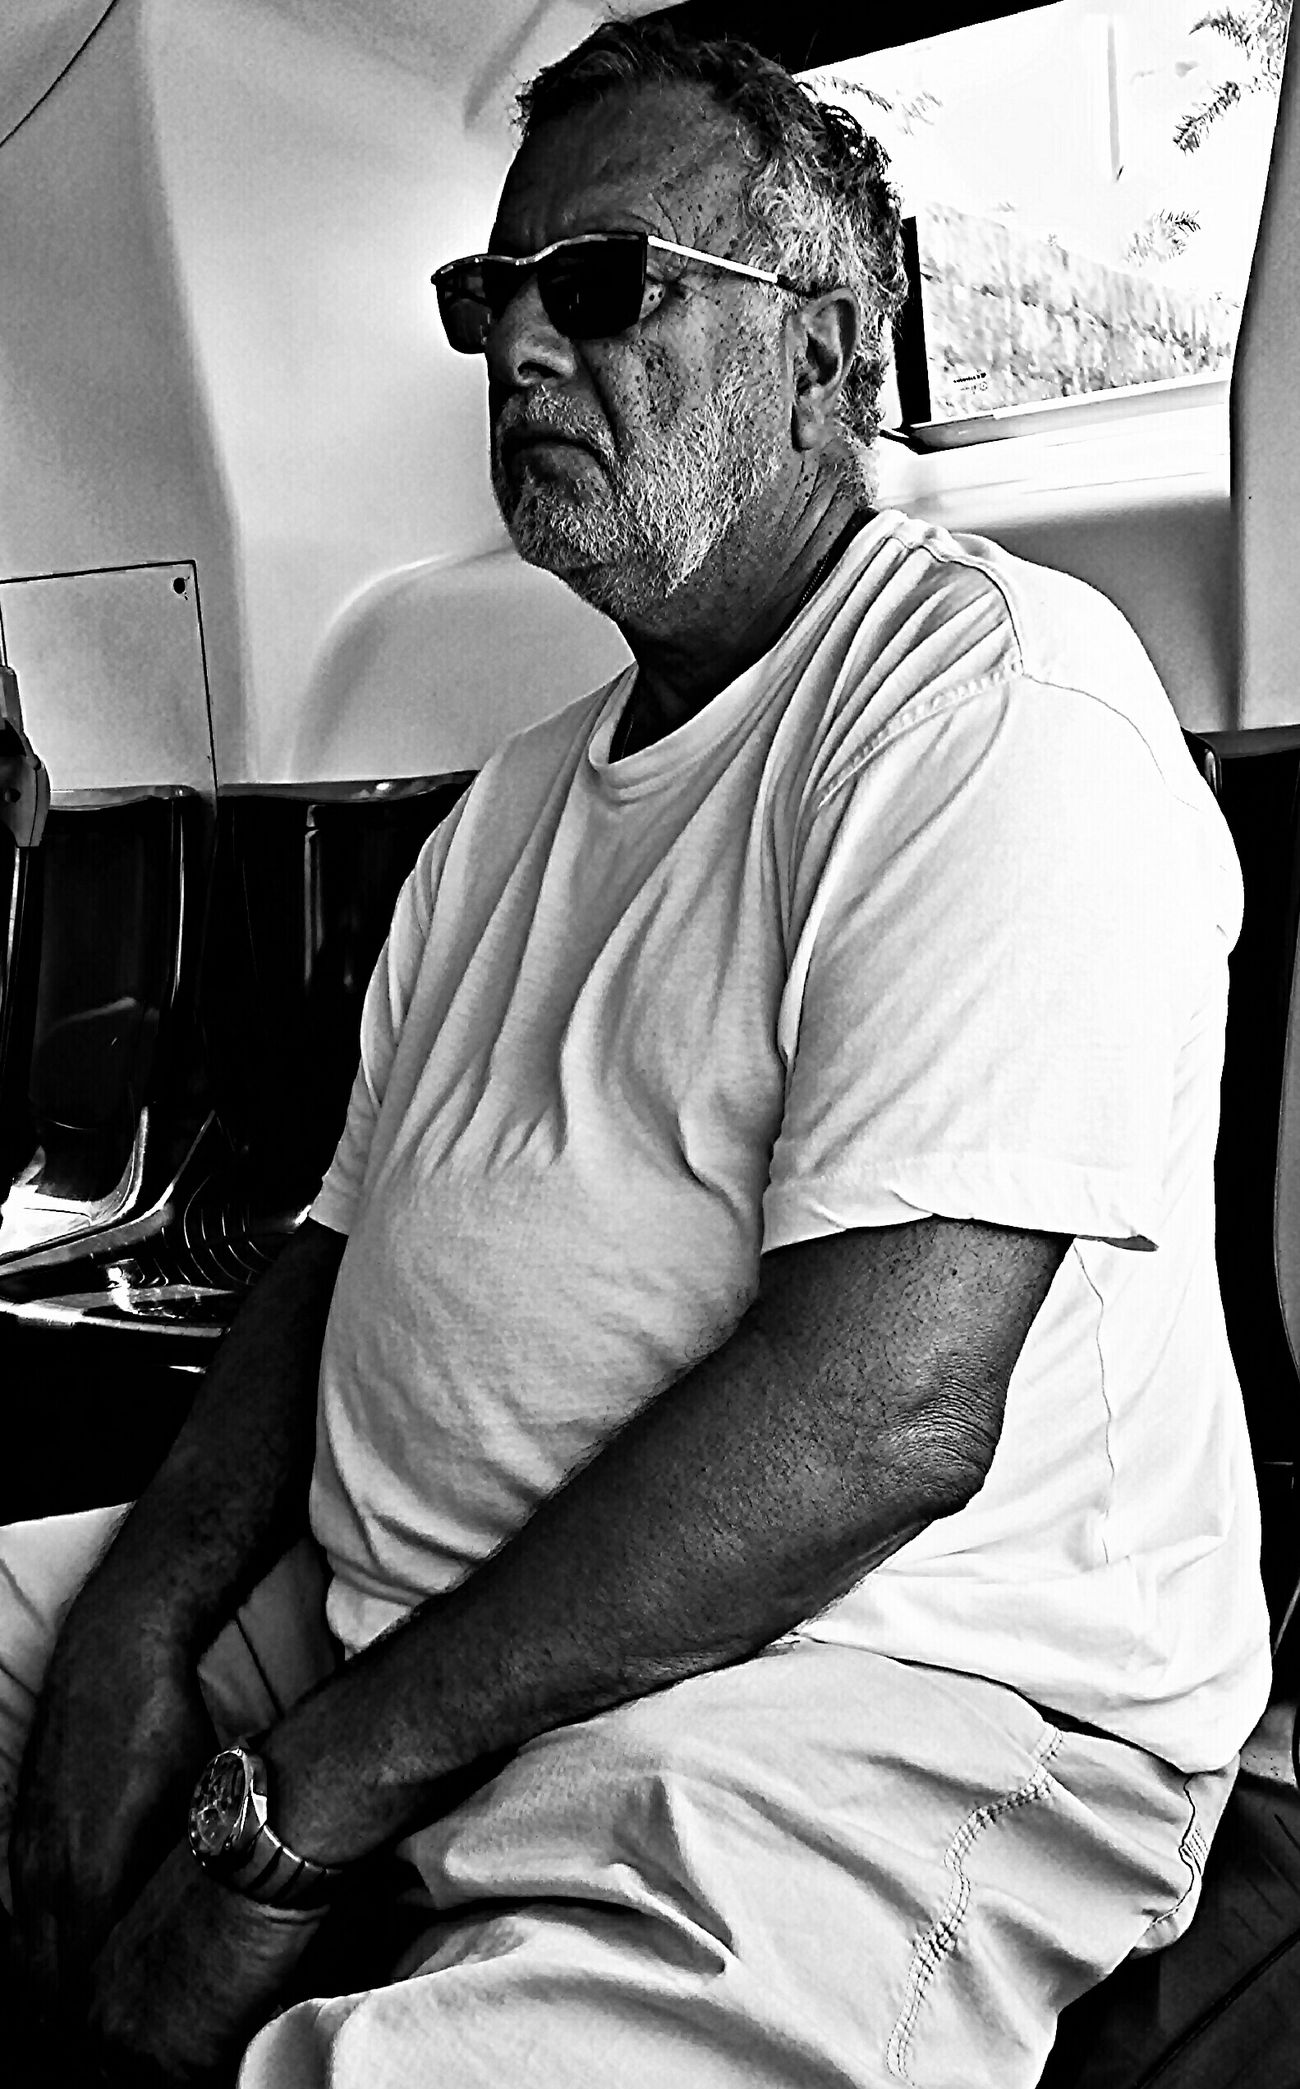 "PhotOnBus. PhonEdited. Serie: "" ...Unknow PeoplE... "" Buenos días Eyeemer@s!! Good morning Eyeemers!! Portrait Blackandwhite We Are Photography, We Are EyeEm En La Guagua"